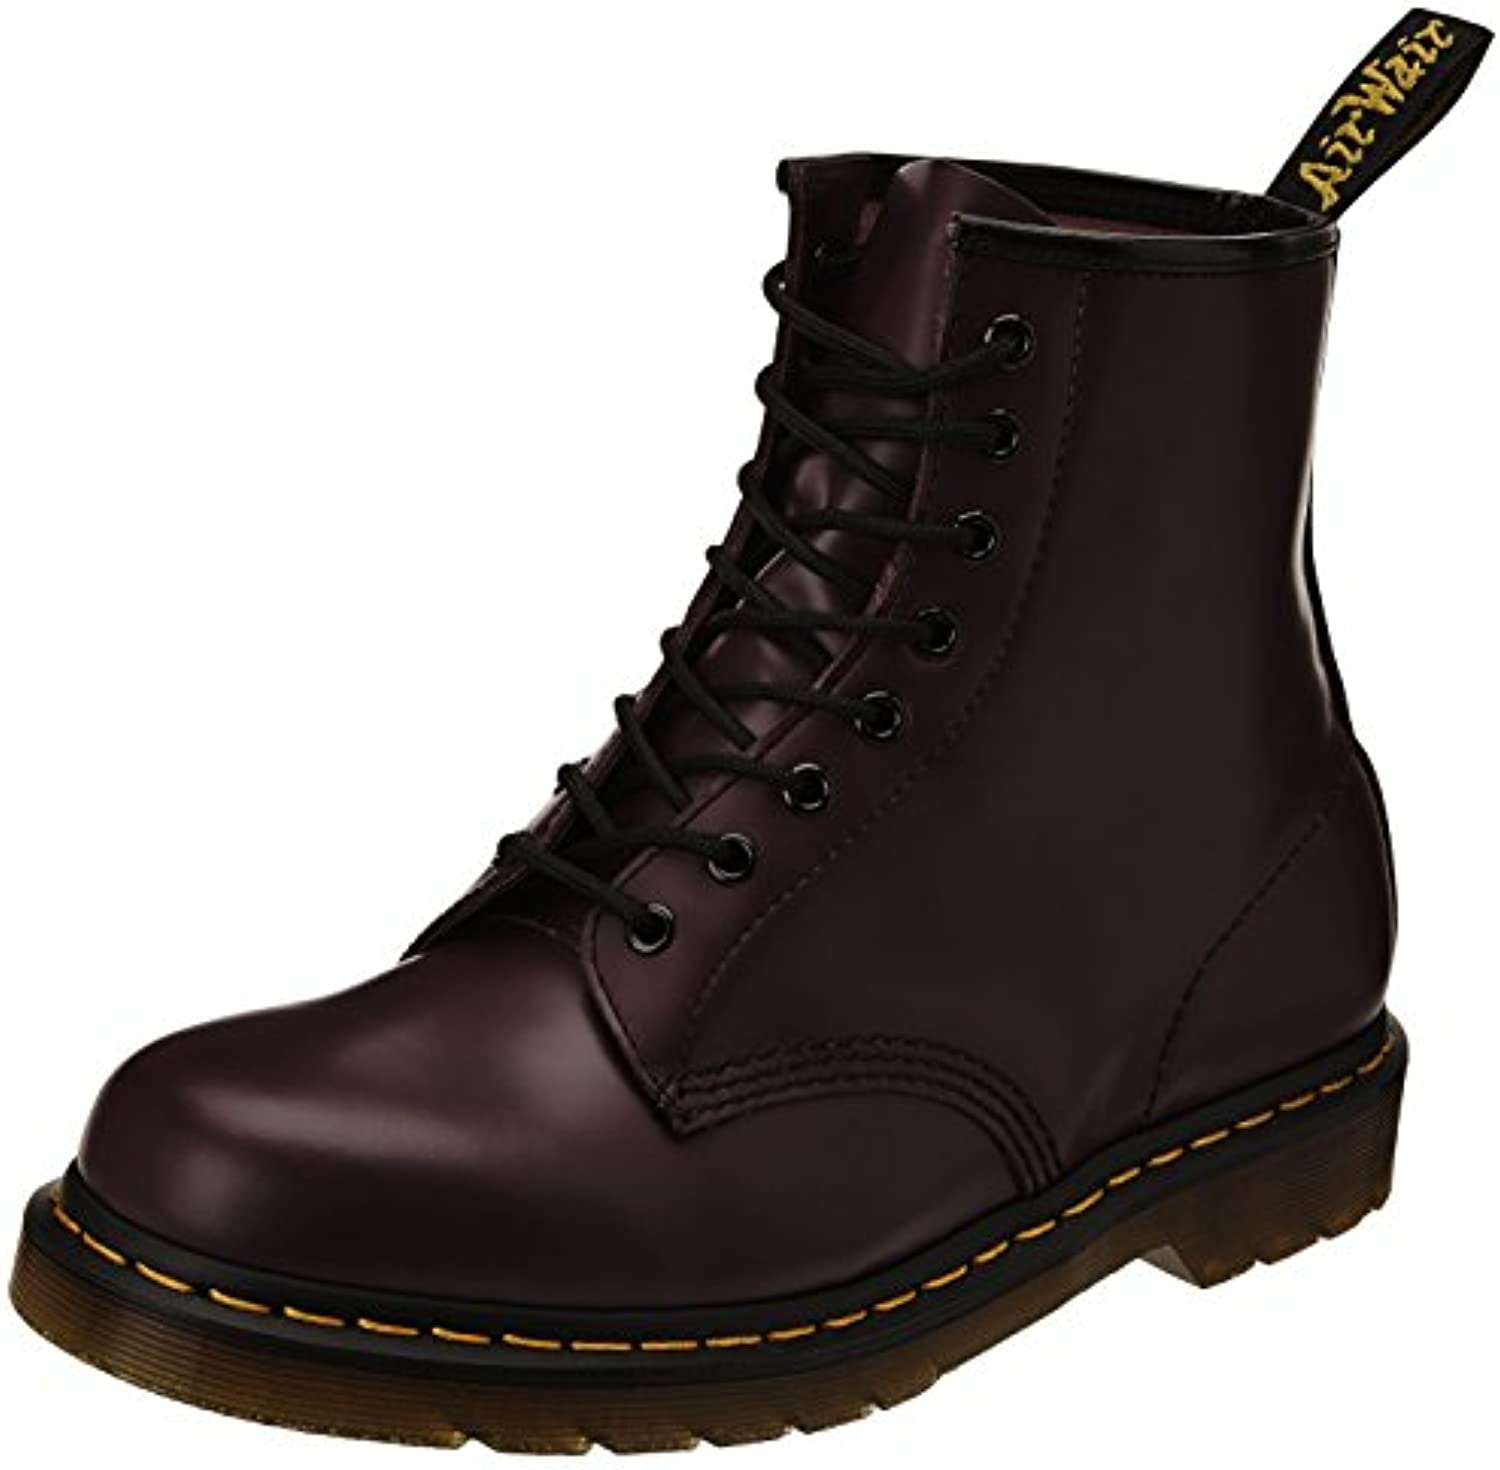 Dr. Martens - Botas para mujer, color morado violet (purple smooth), talla 39